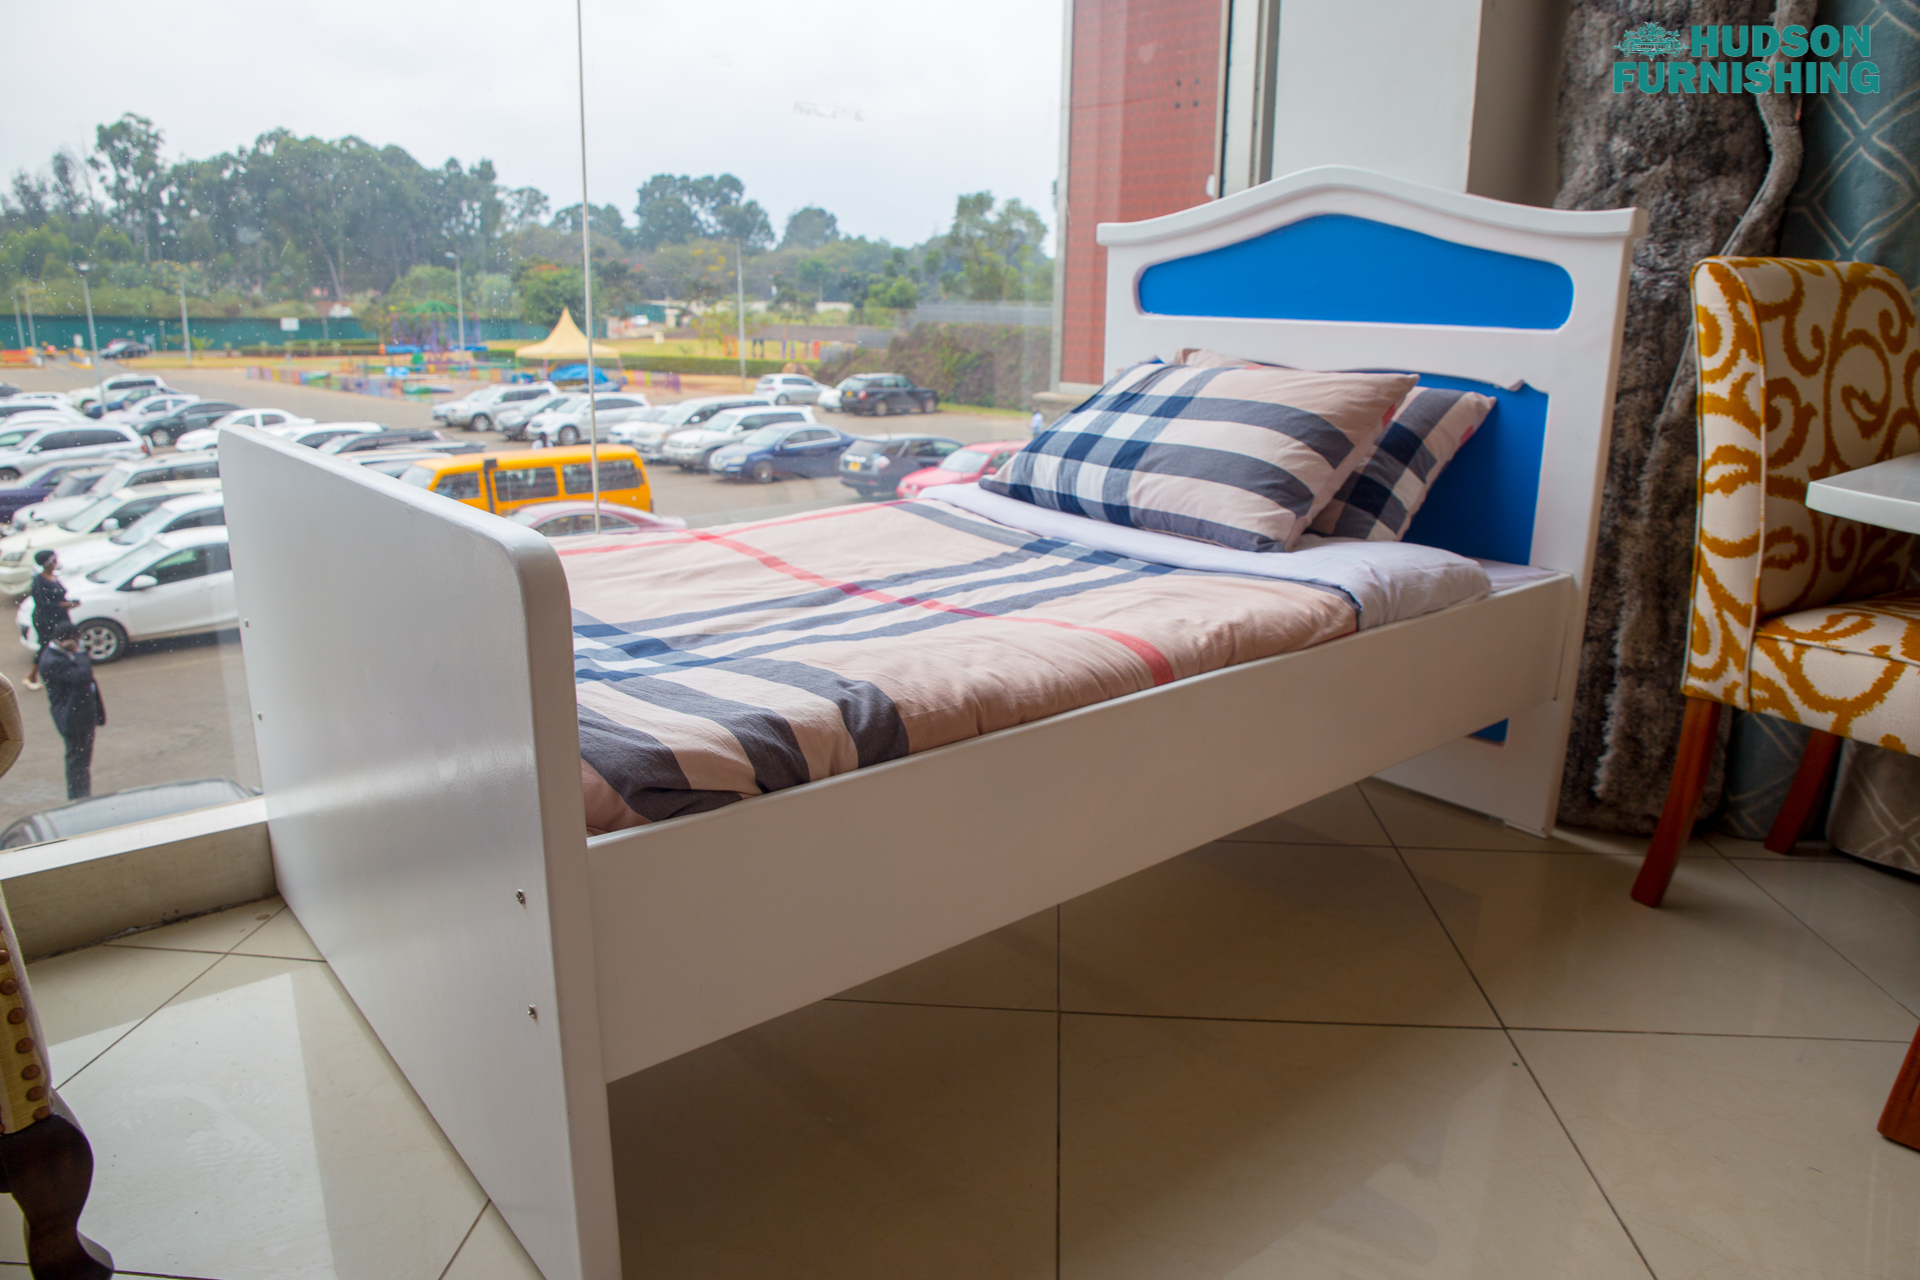 Kids Bed 3by6